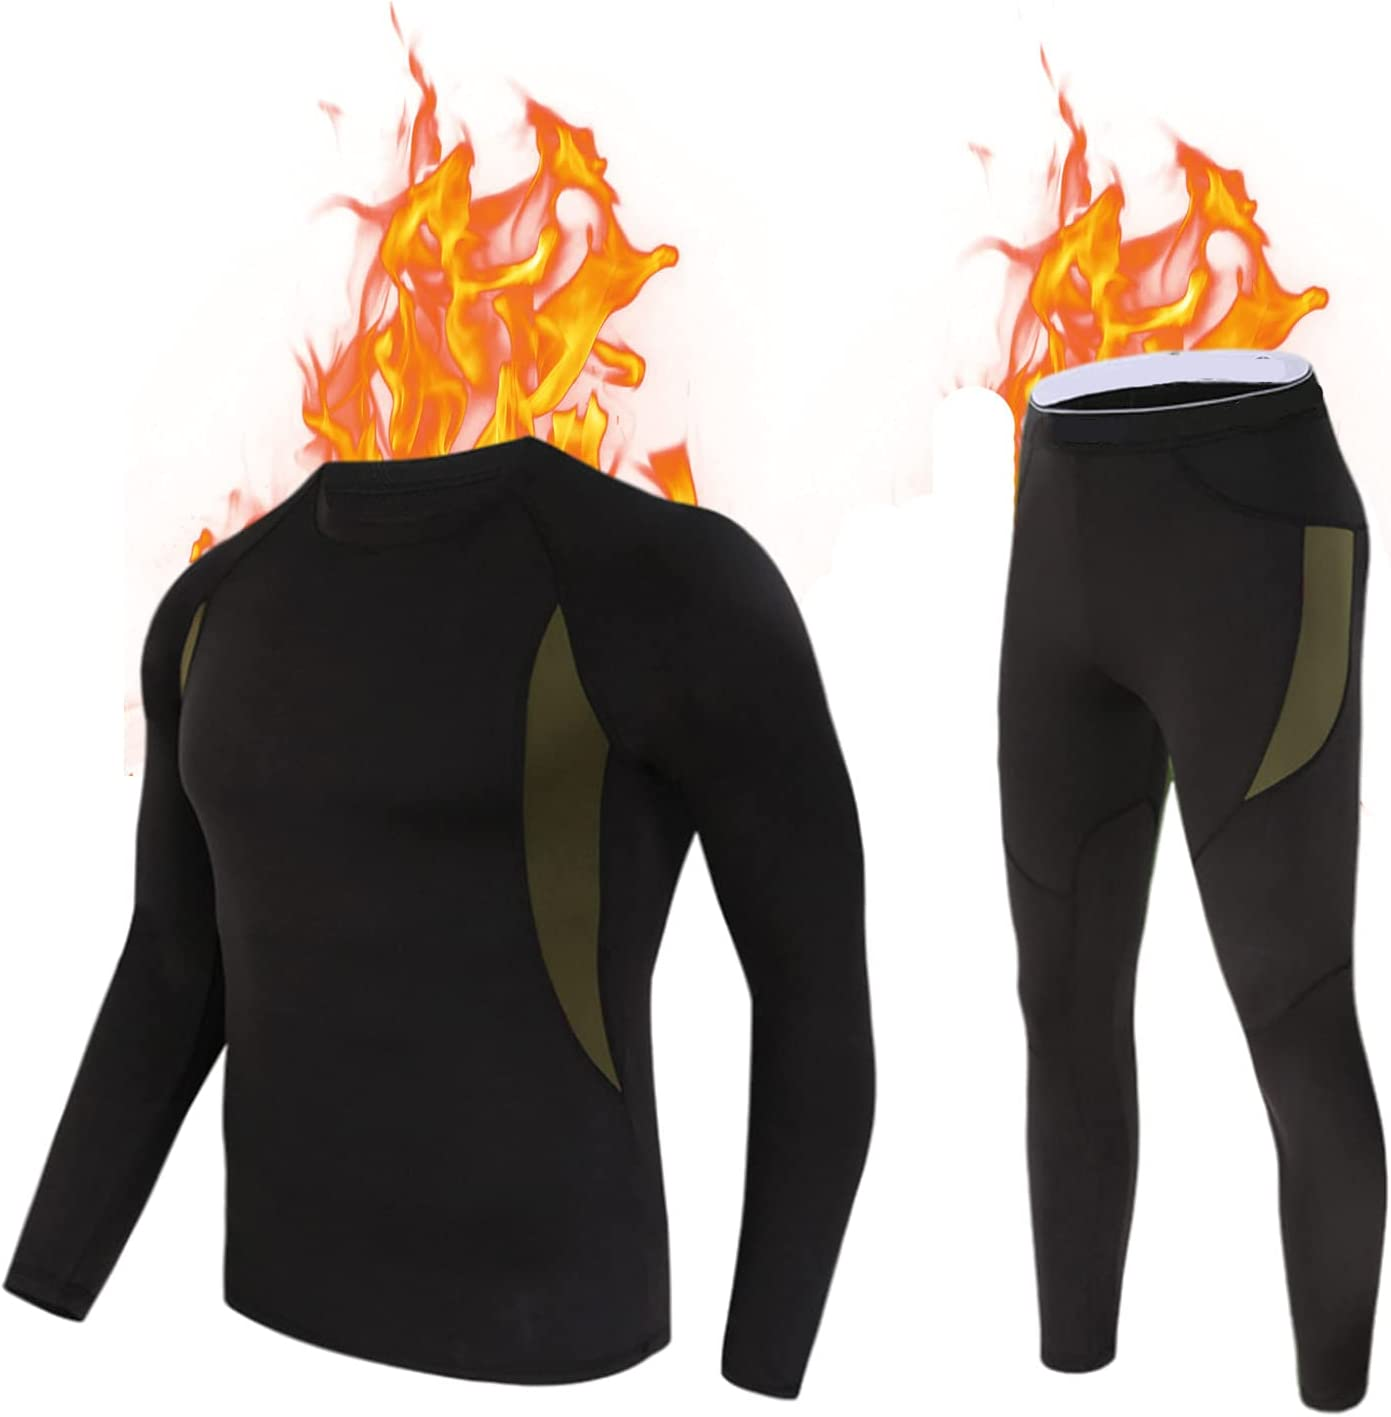 CCCYT Underwear Thermal for Men, Winter Base Layer Set Tops & Long Johns Compression Wintergear for Heat Retention